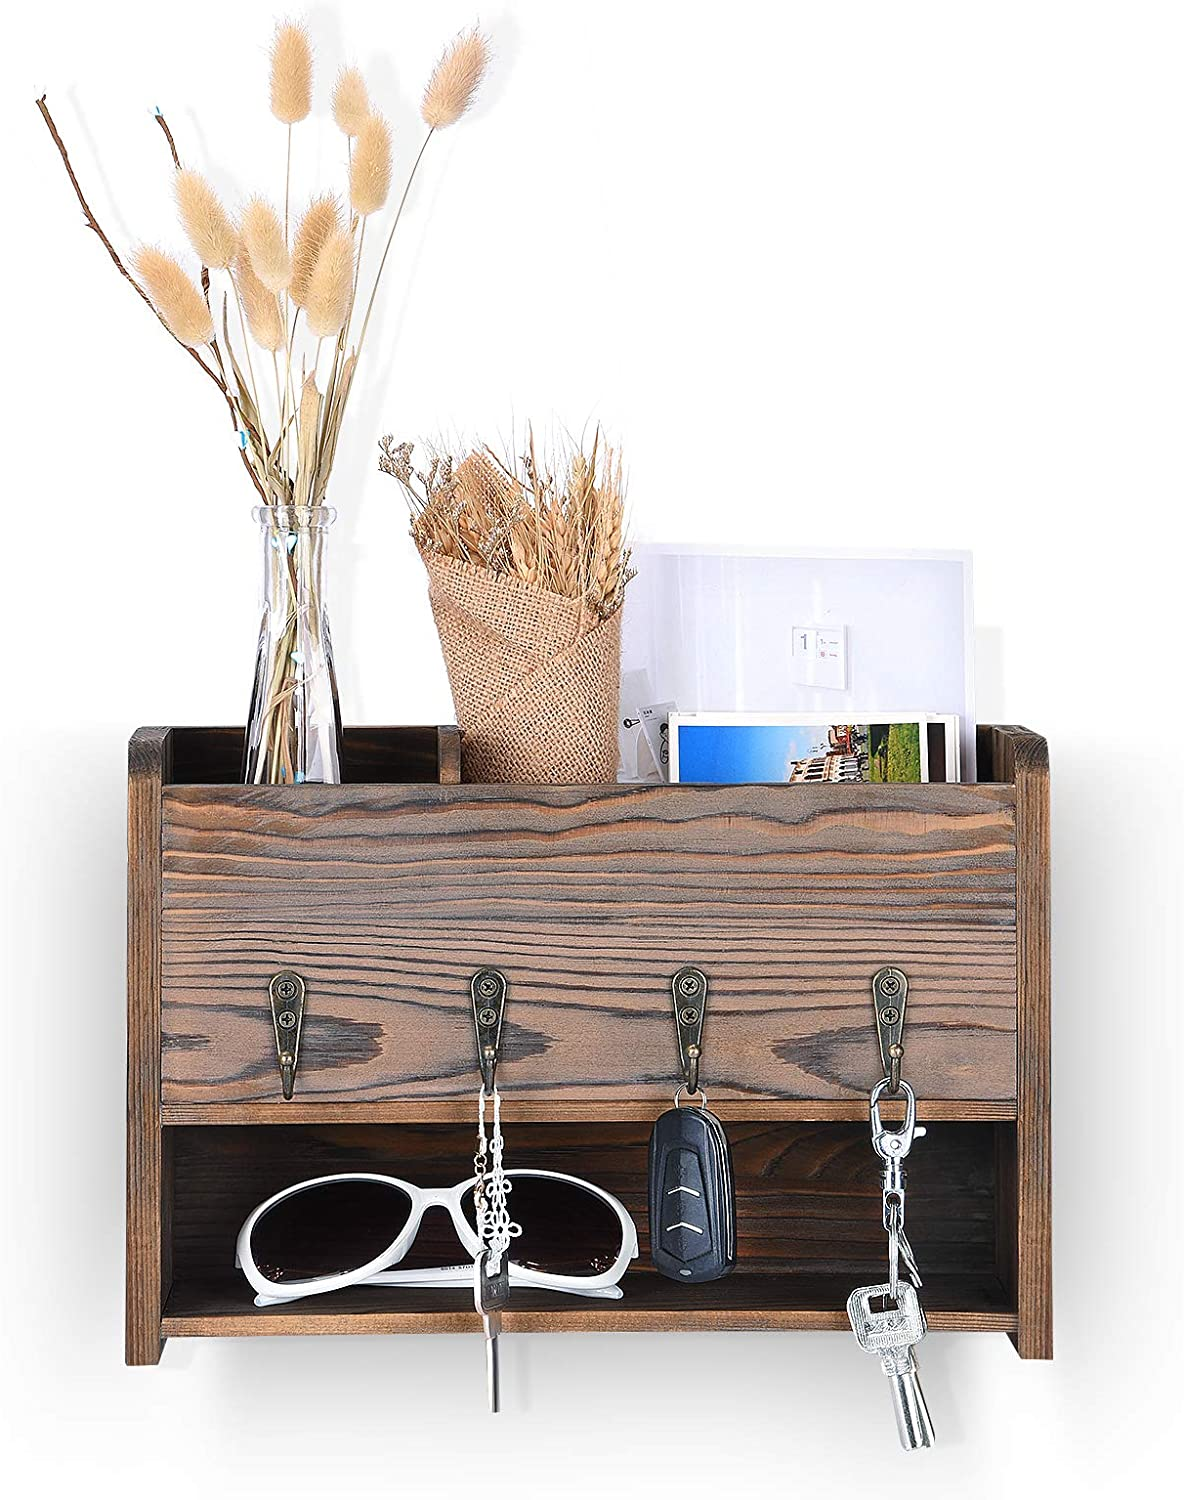 Rustic Wood Key Holder for Wall, Wall Organizer with 3 Adjustable Compartments and 4 Key Hooks, Mail Sorter for Entryway, Mudroom, Kitchen